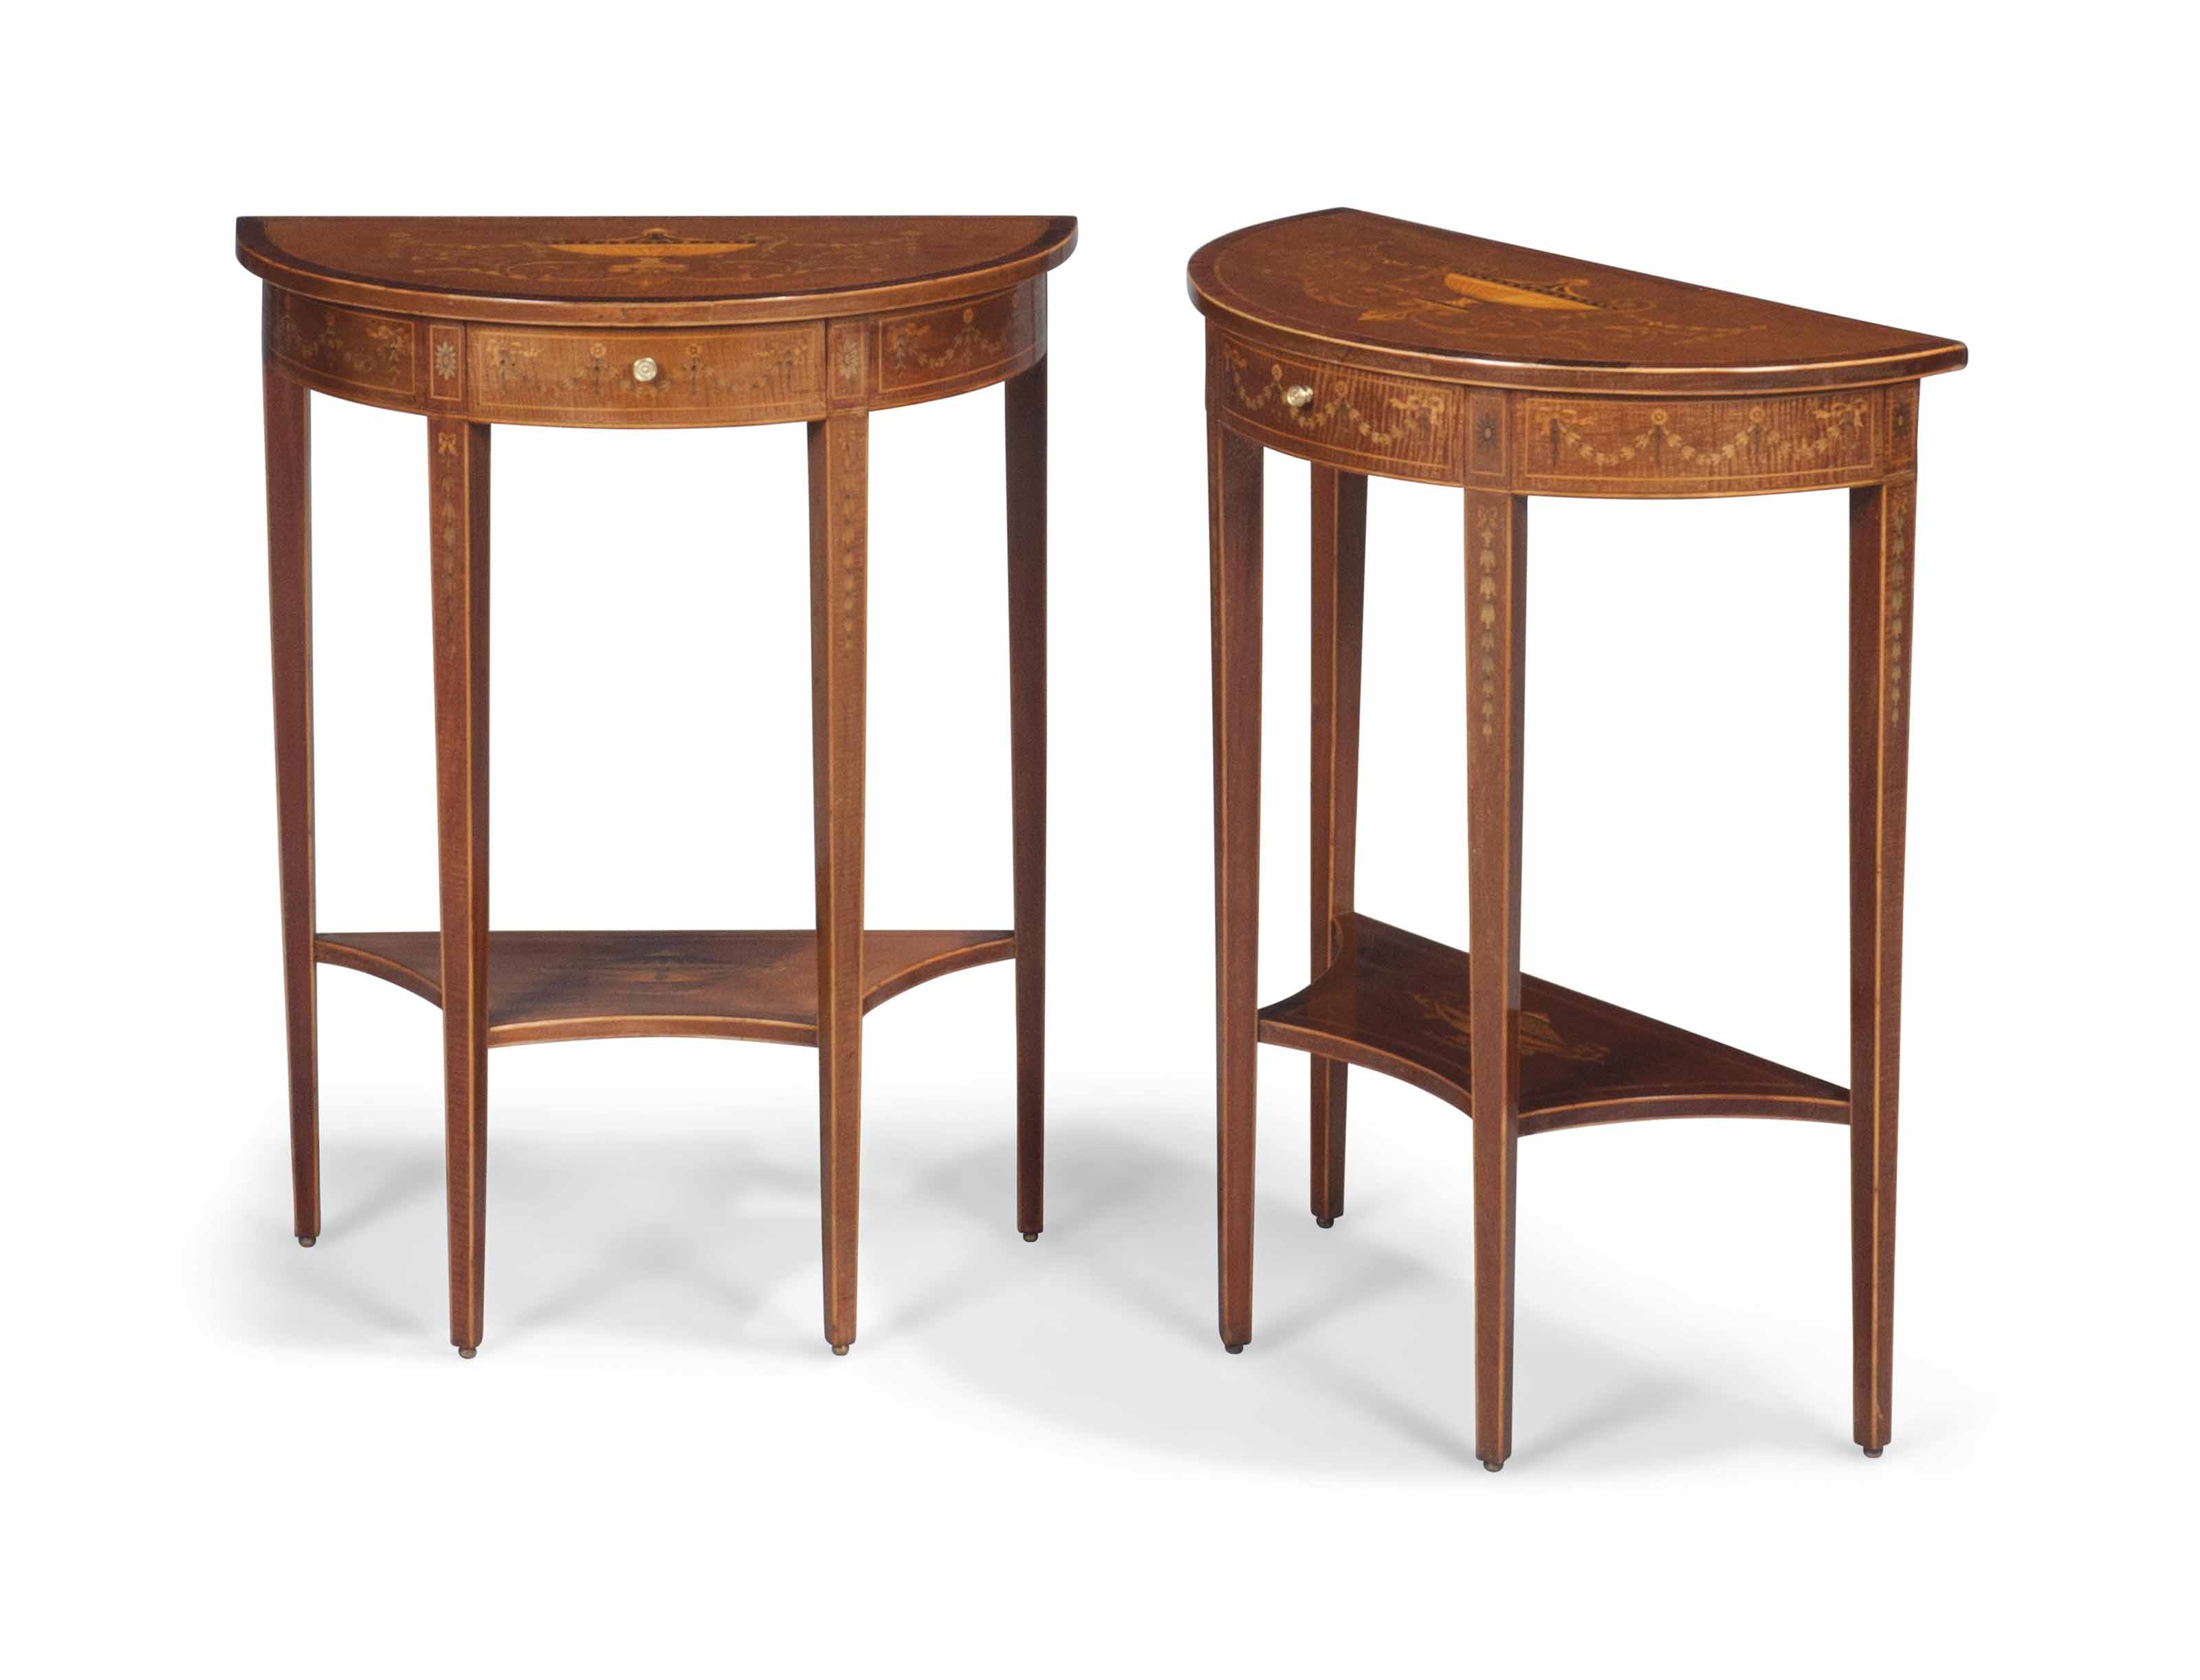 A PAIR OF LATE VICTORIAN FIDDLEBACK MAHOGANY AND MARQUETRY SIDE TABLES